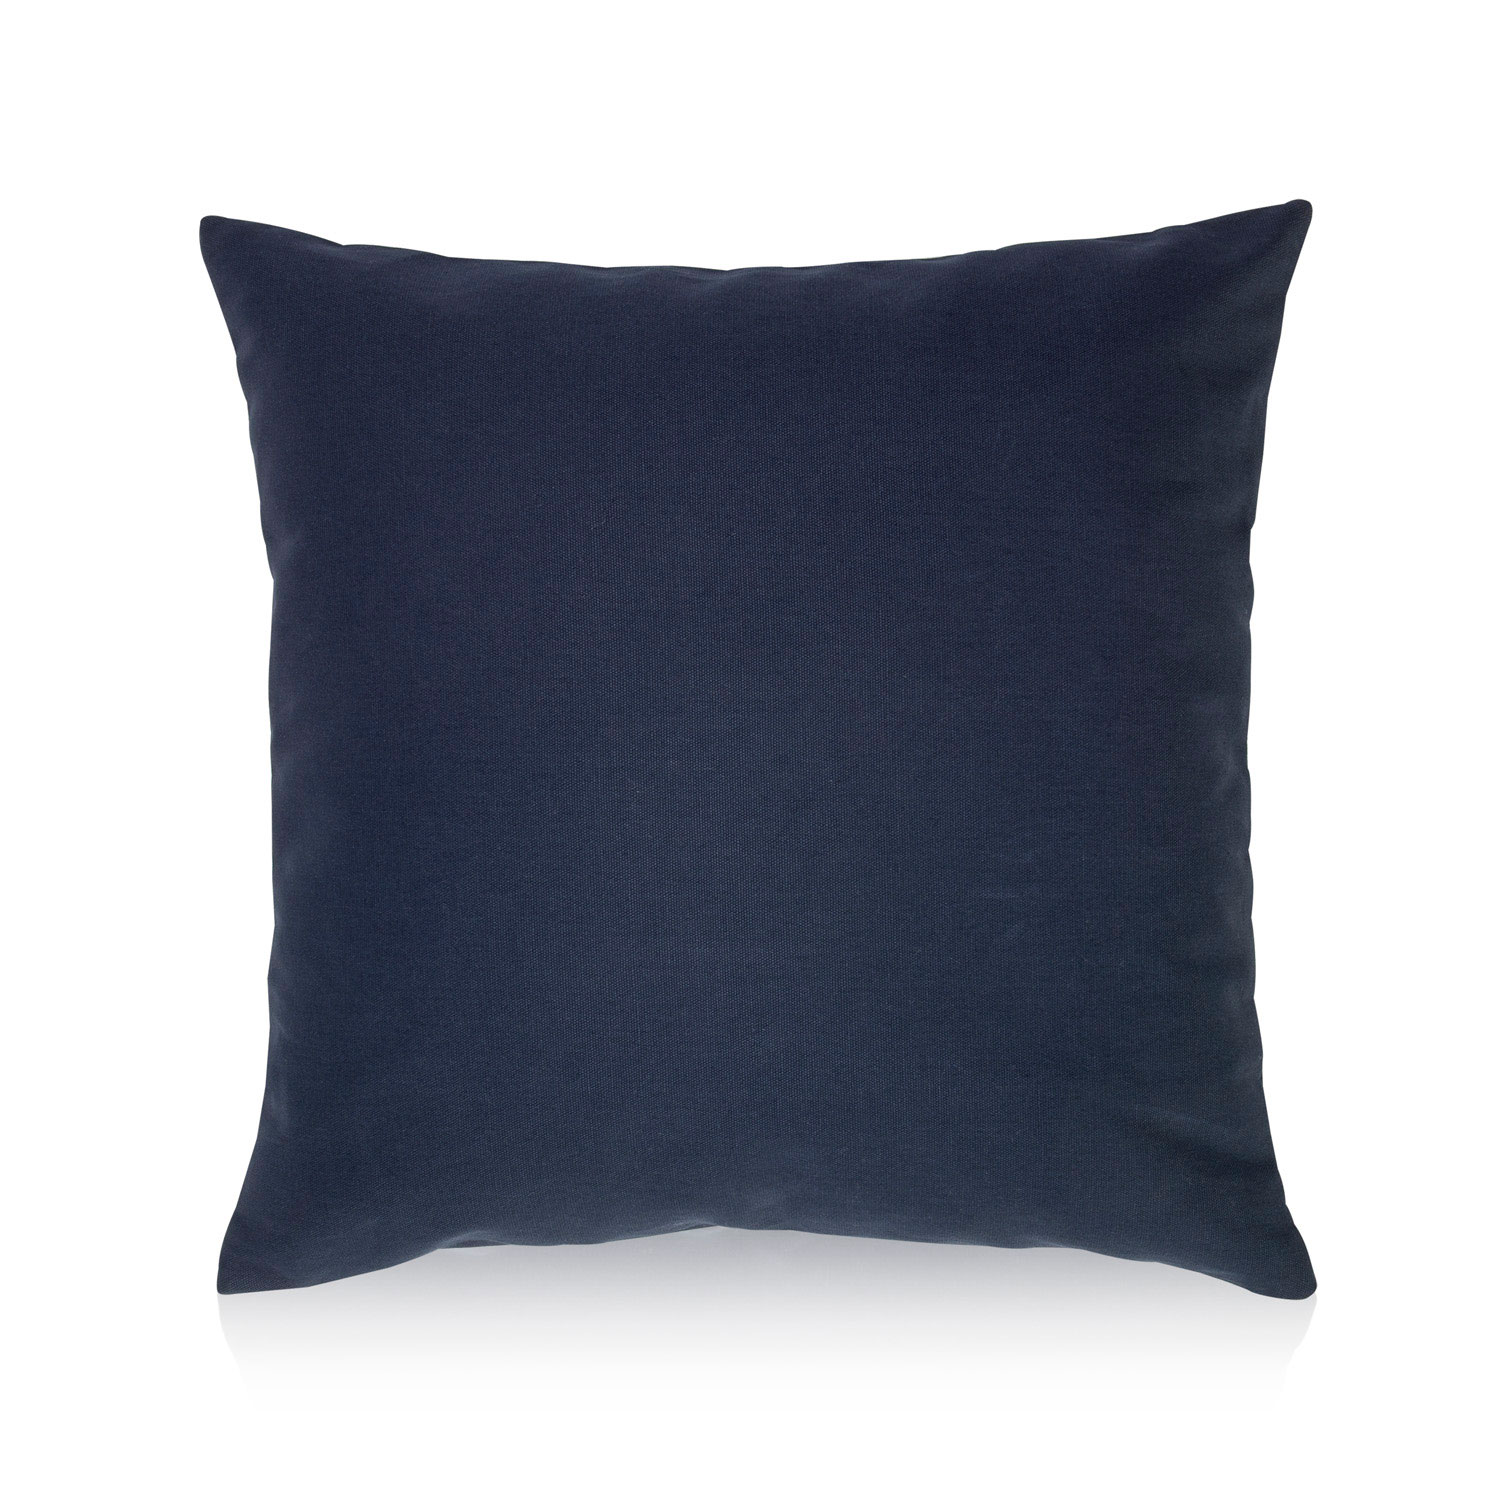 cushion depth gb rugs velvet touch to striped pads and blue initial white ikea textiles inner cushions pillows en products the pillow cotton softness gives stockholm colour